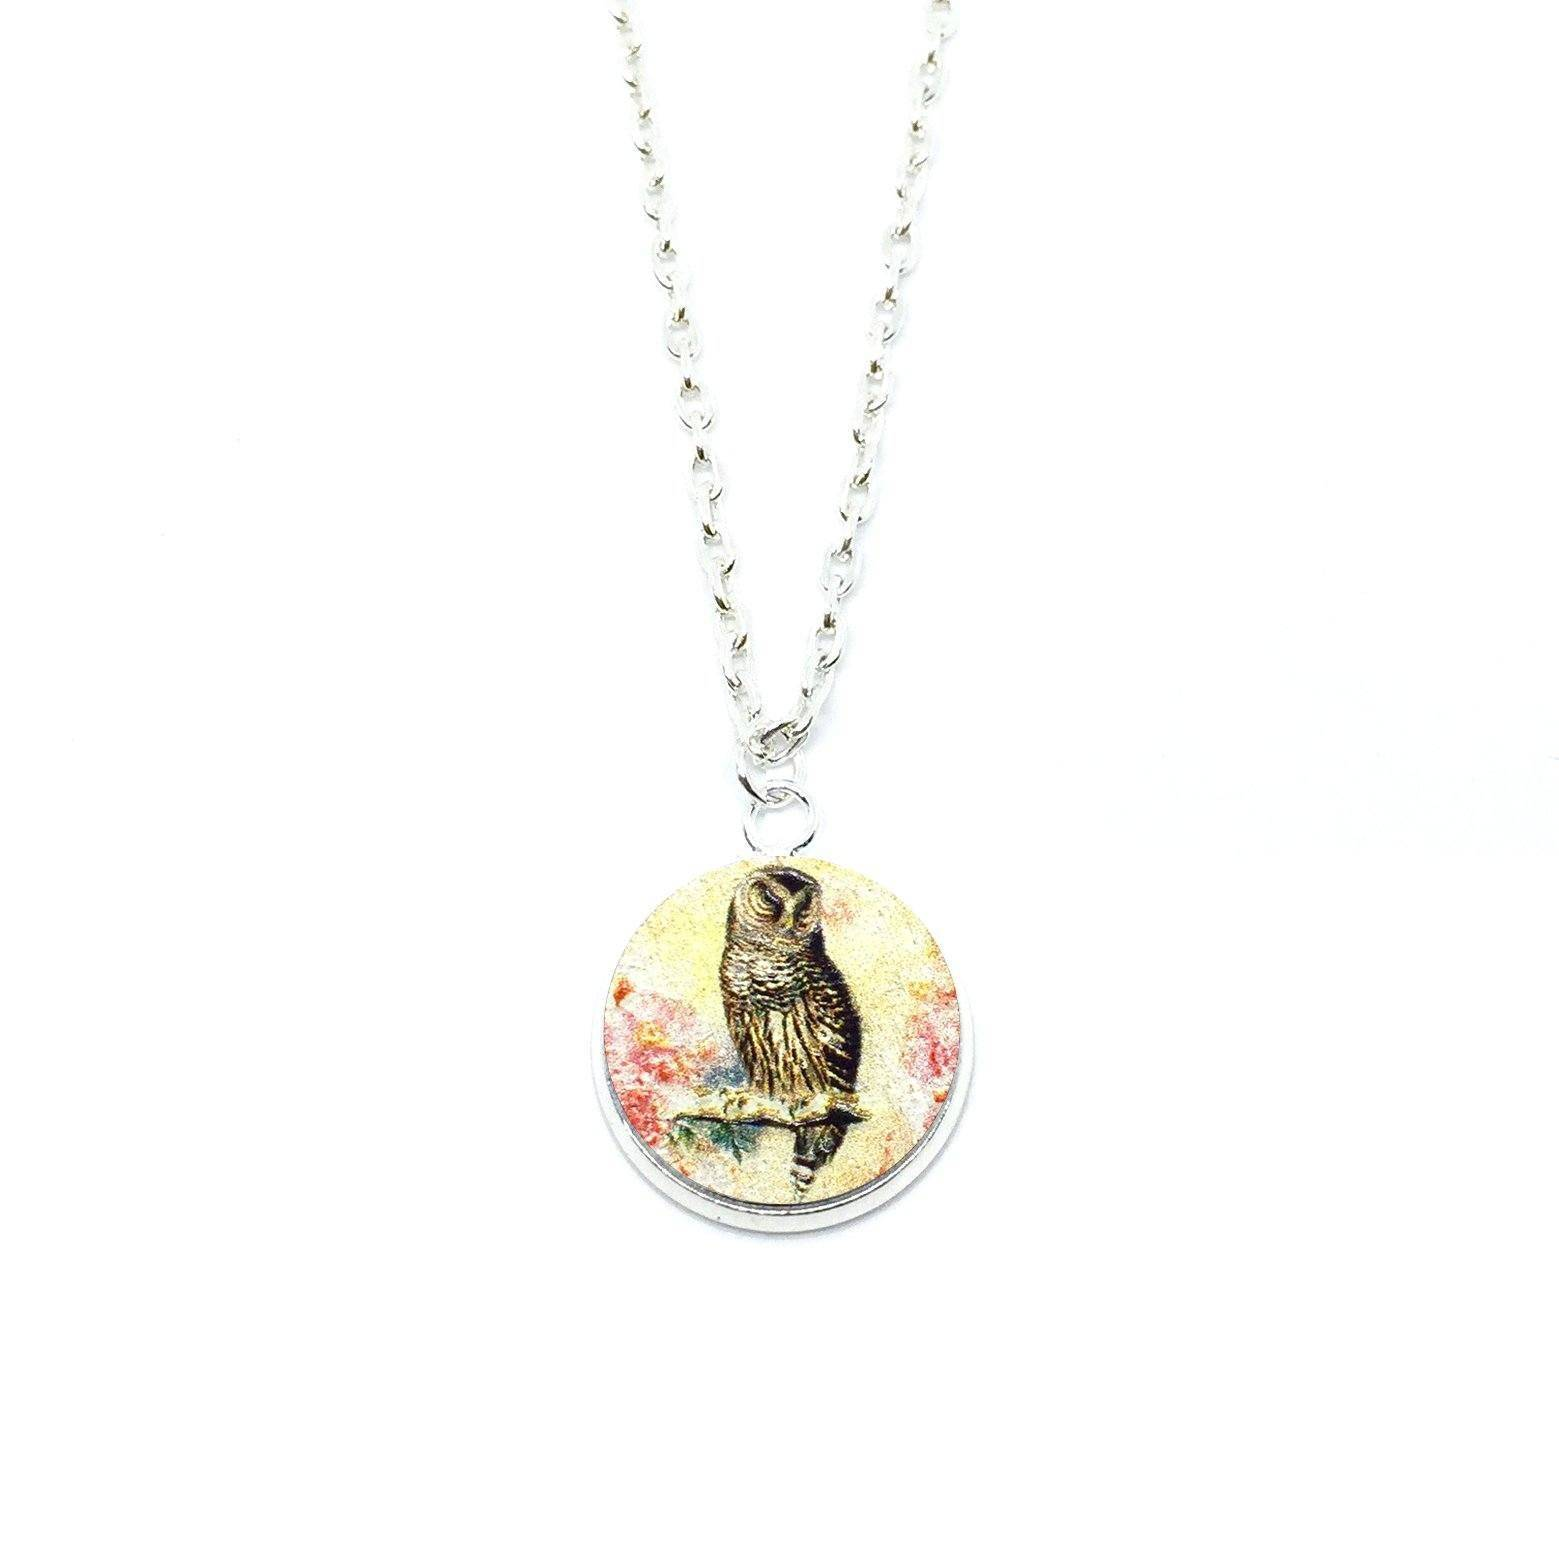 Vintage Owl Wood Pendant Necklace - Necklaces - Paperdaise Accessories - Naiise